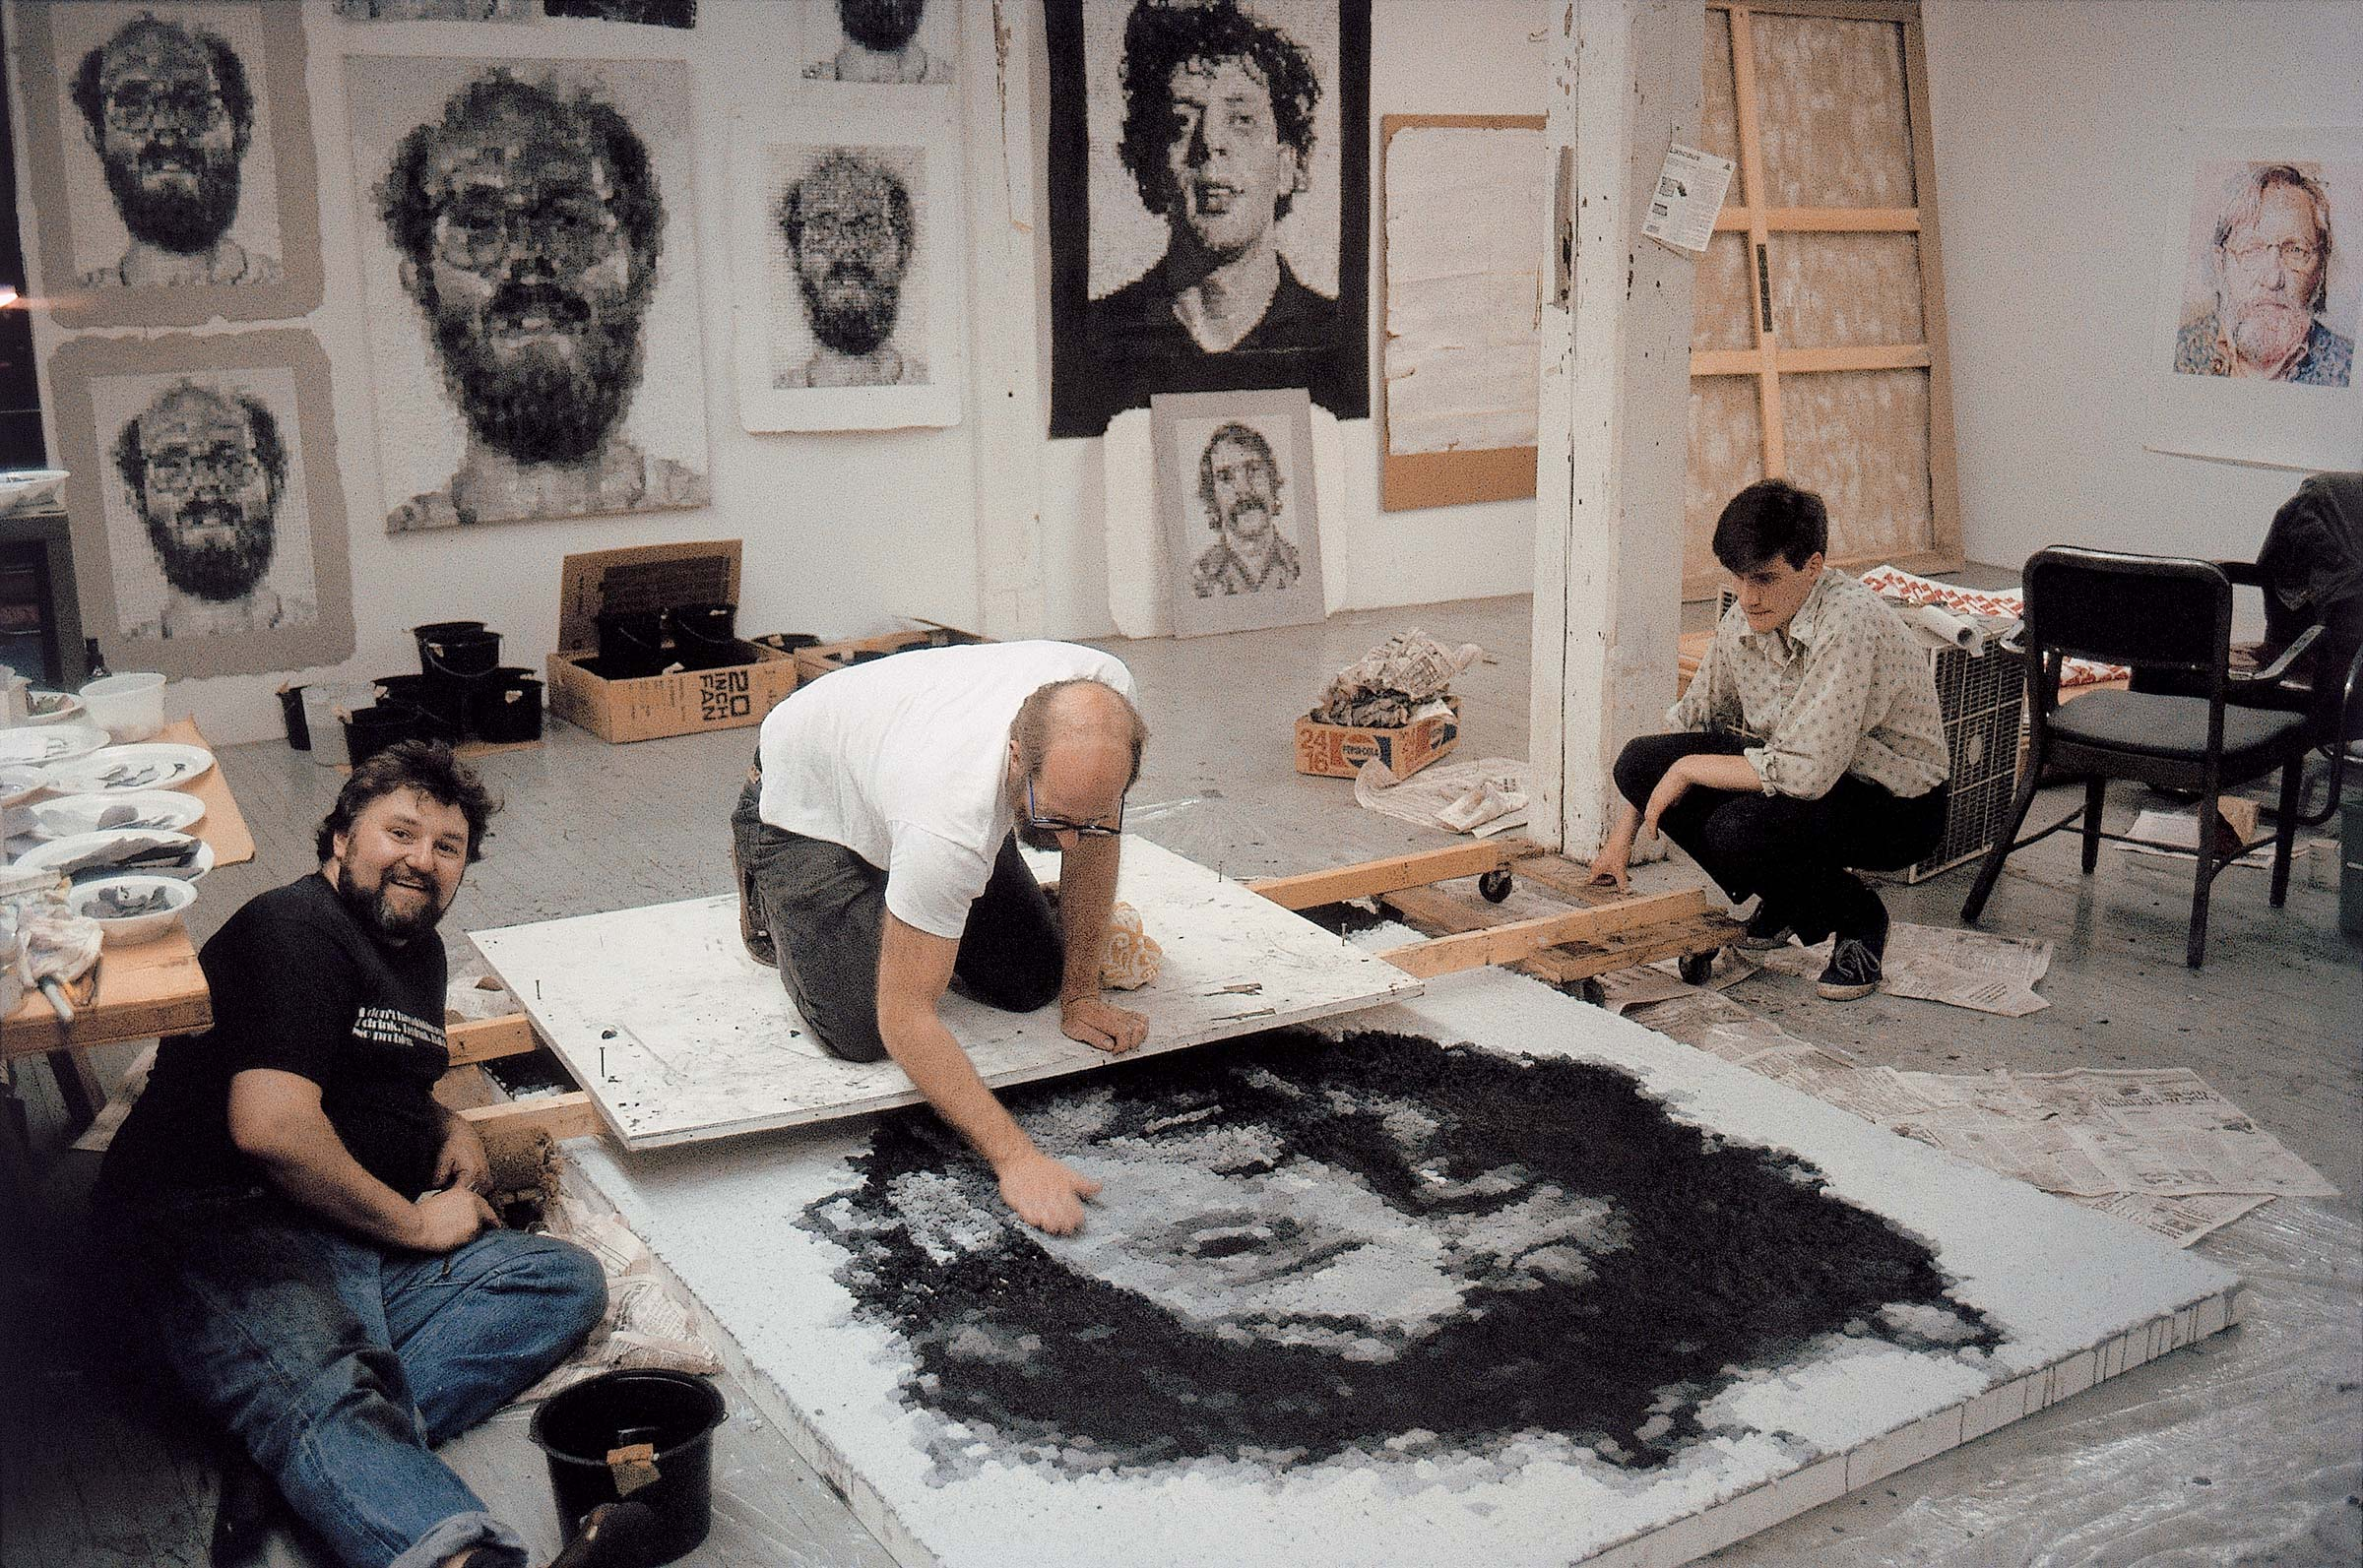 'Phil' in progress, 1983 (Photo by John Back)